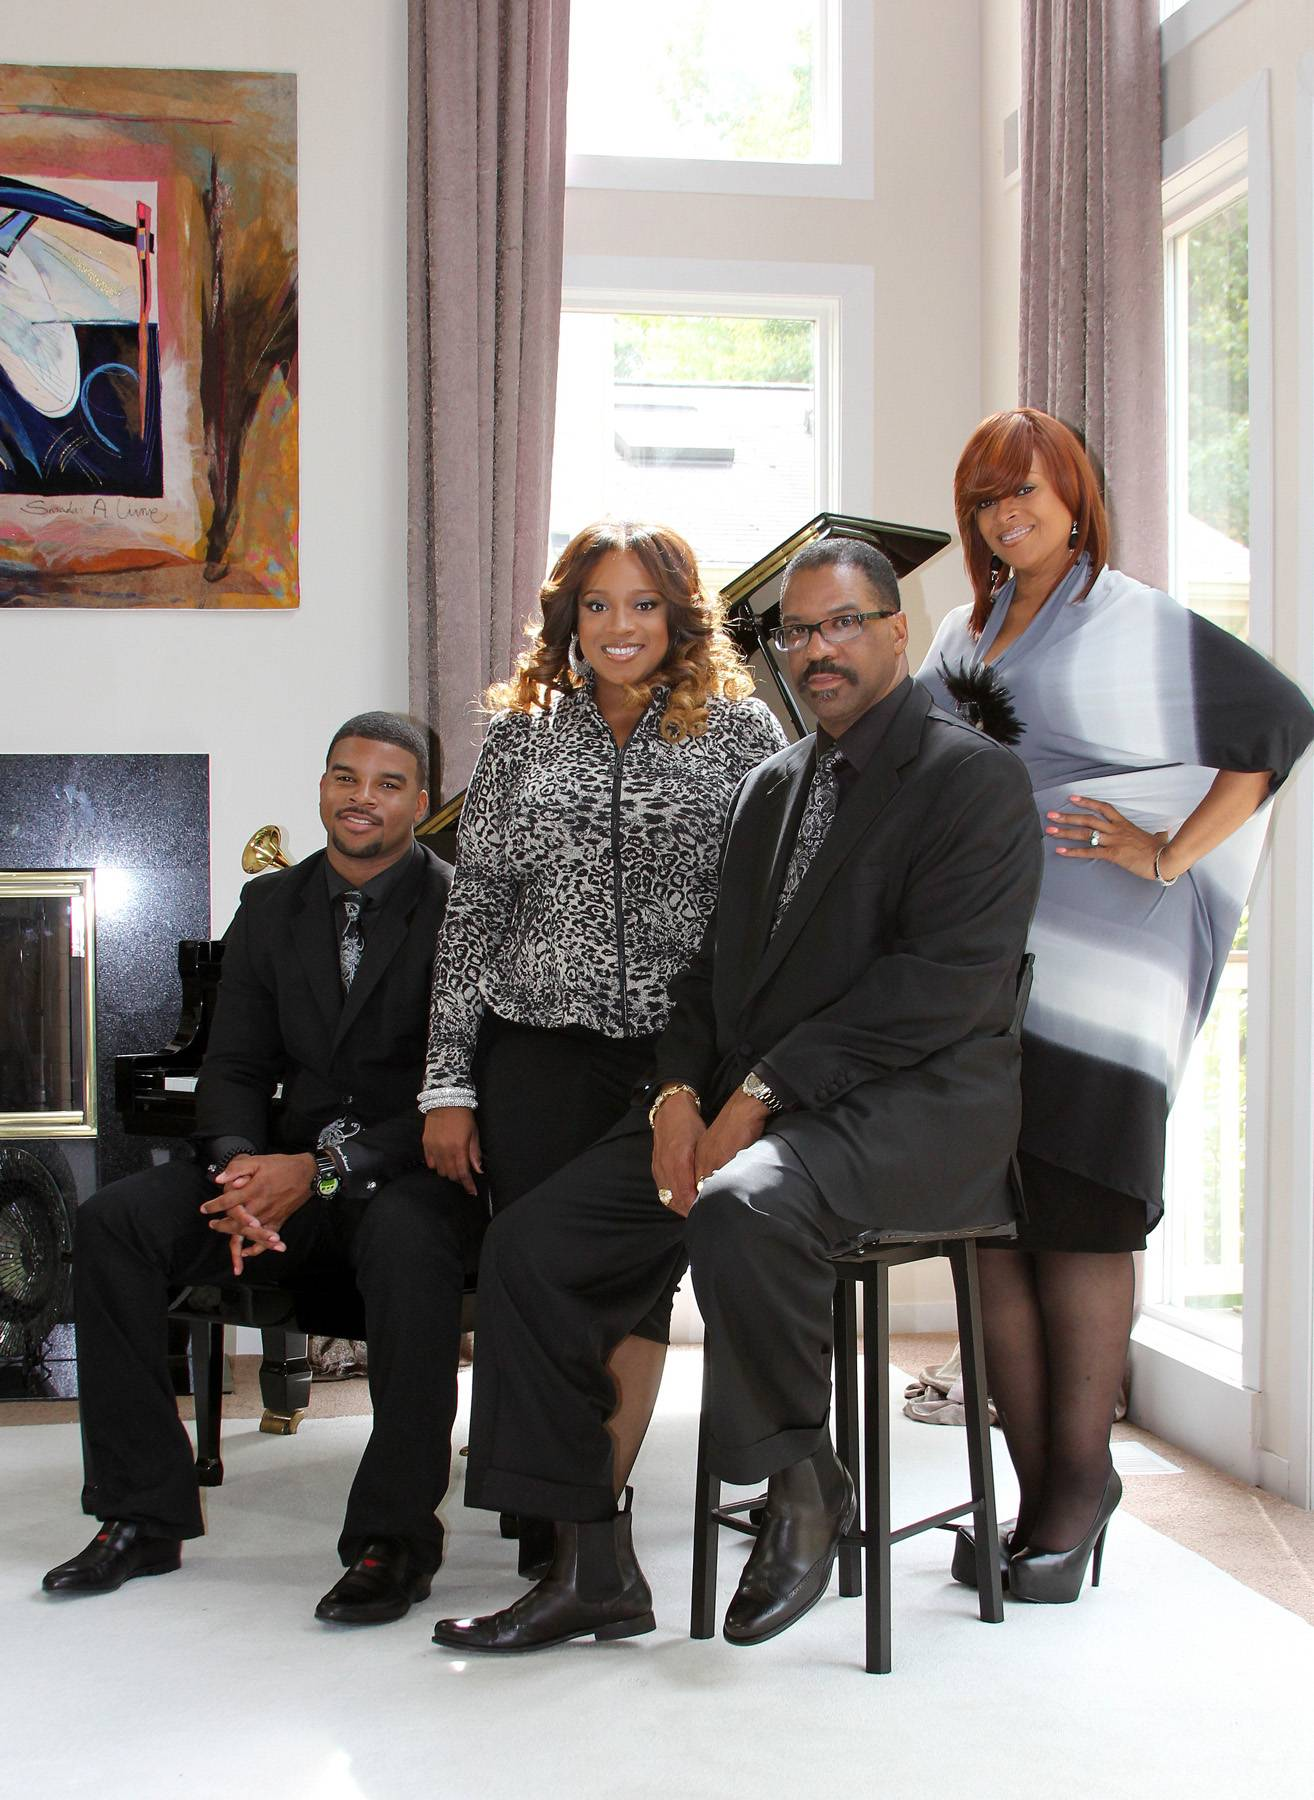 All in the Family  - Karen Clark Sheard keeps the ministry all in the family, from her and her husband pastoring local and international churches to her daughter, Kierra Sheard, being a head judge on BET Sunday Best,or being a popular contemporary gospel artist and her son being a producer for Pharrell Williams's Star Trak Entertainment, the family is all in the music. (Photo: BET)